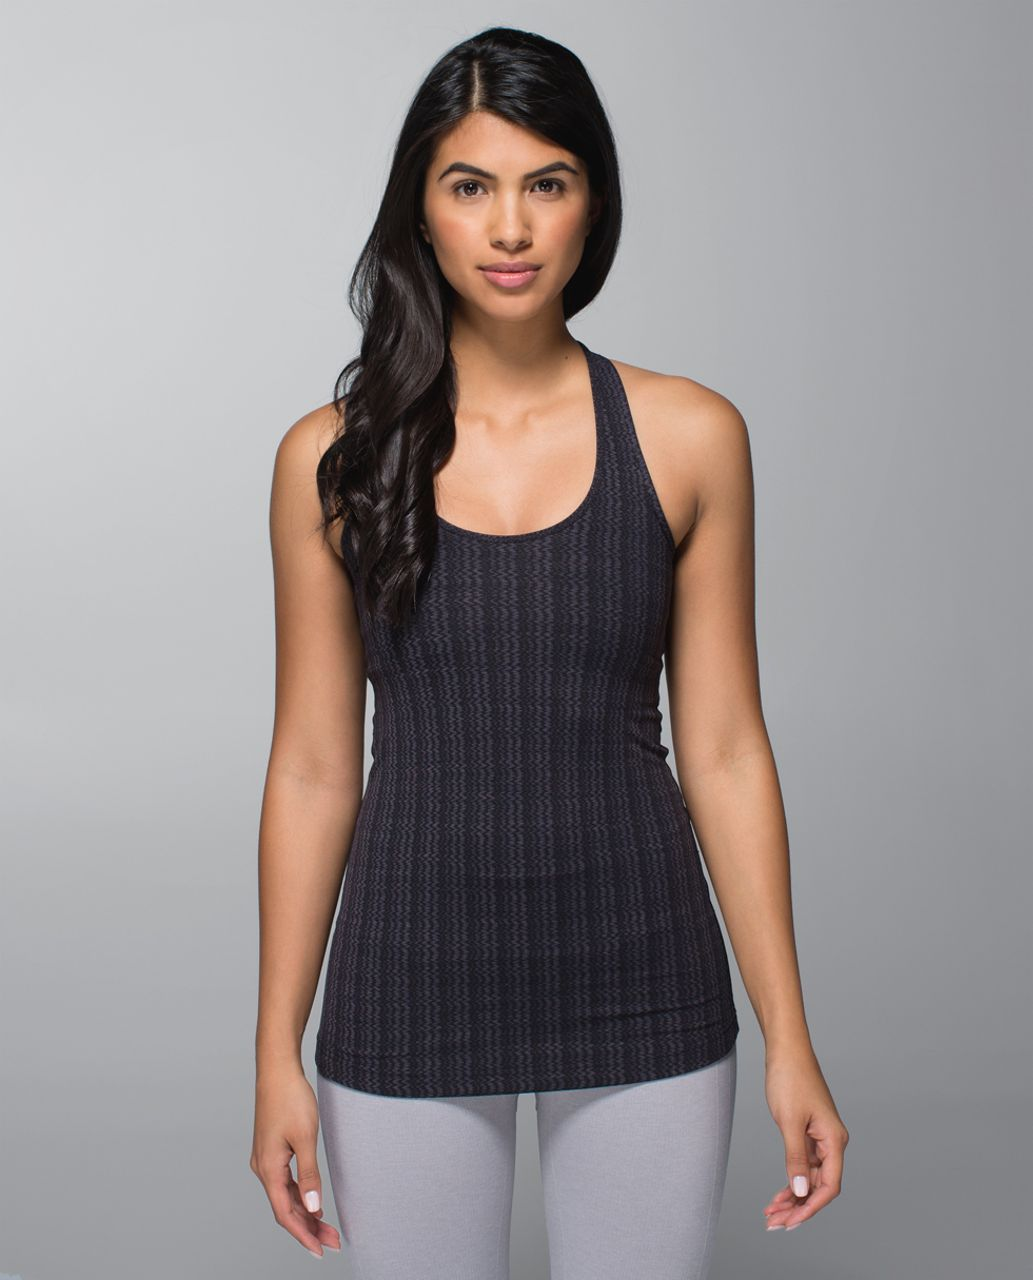 Lululemon Cool Racerback - Ziggy Wee September Black